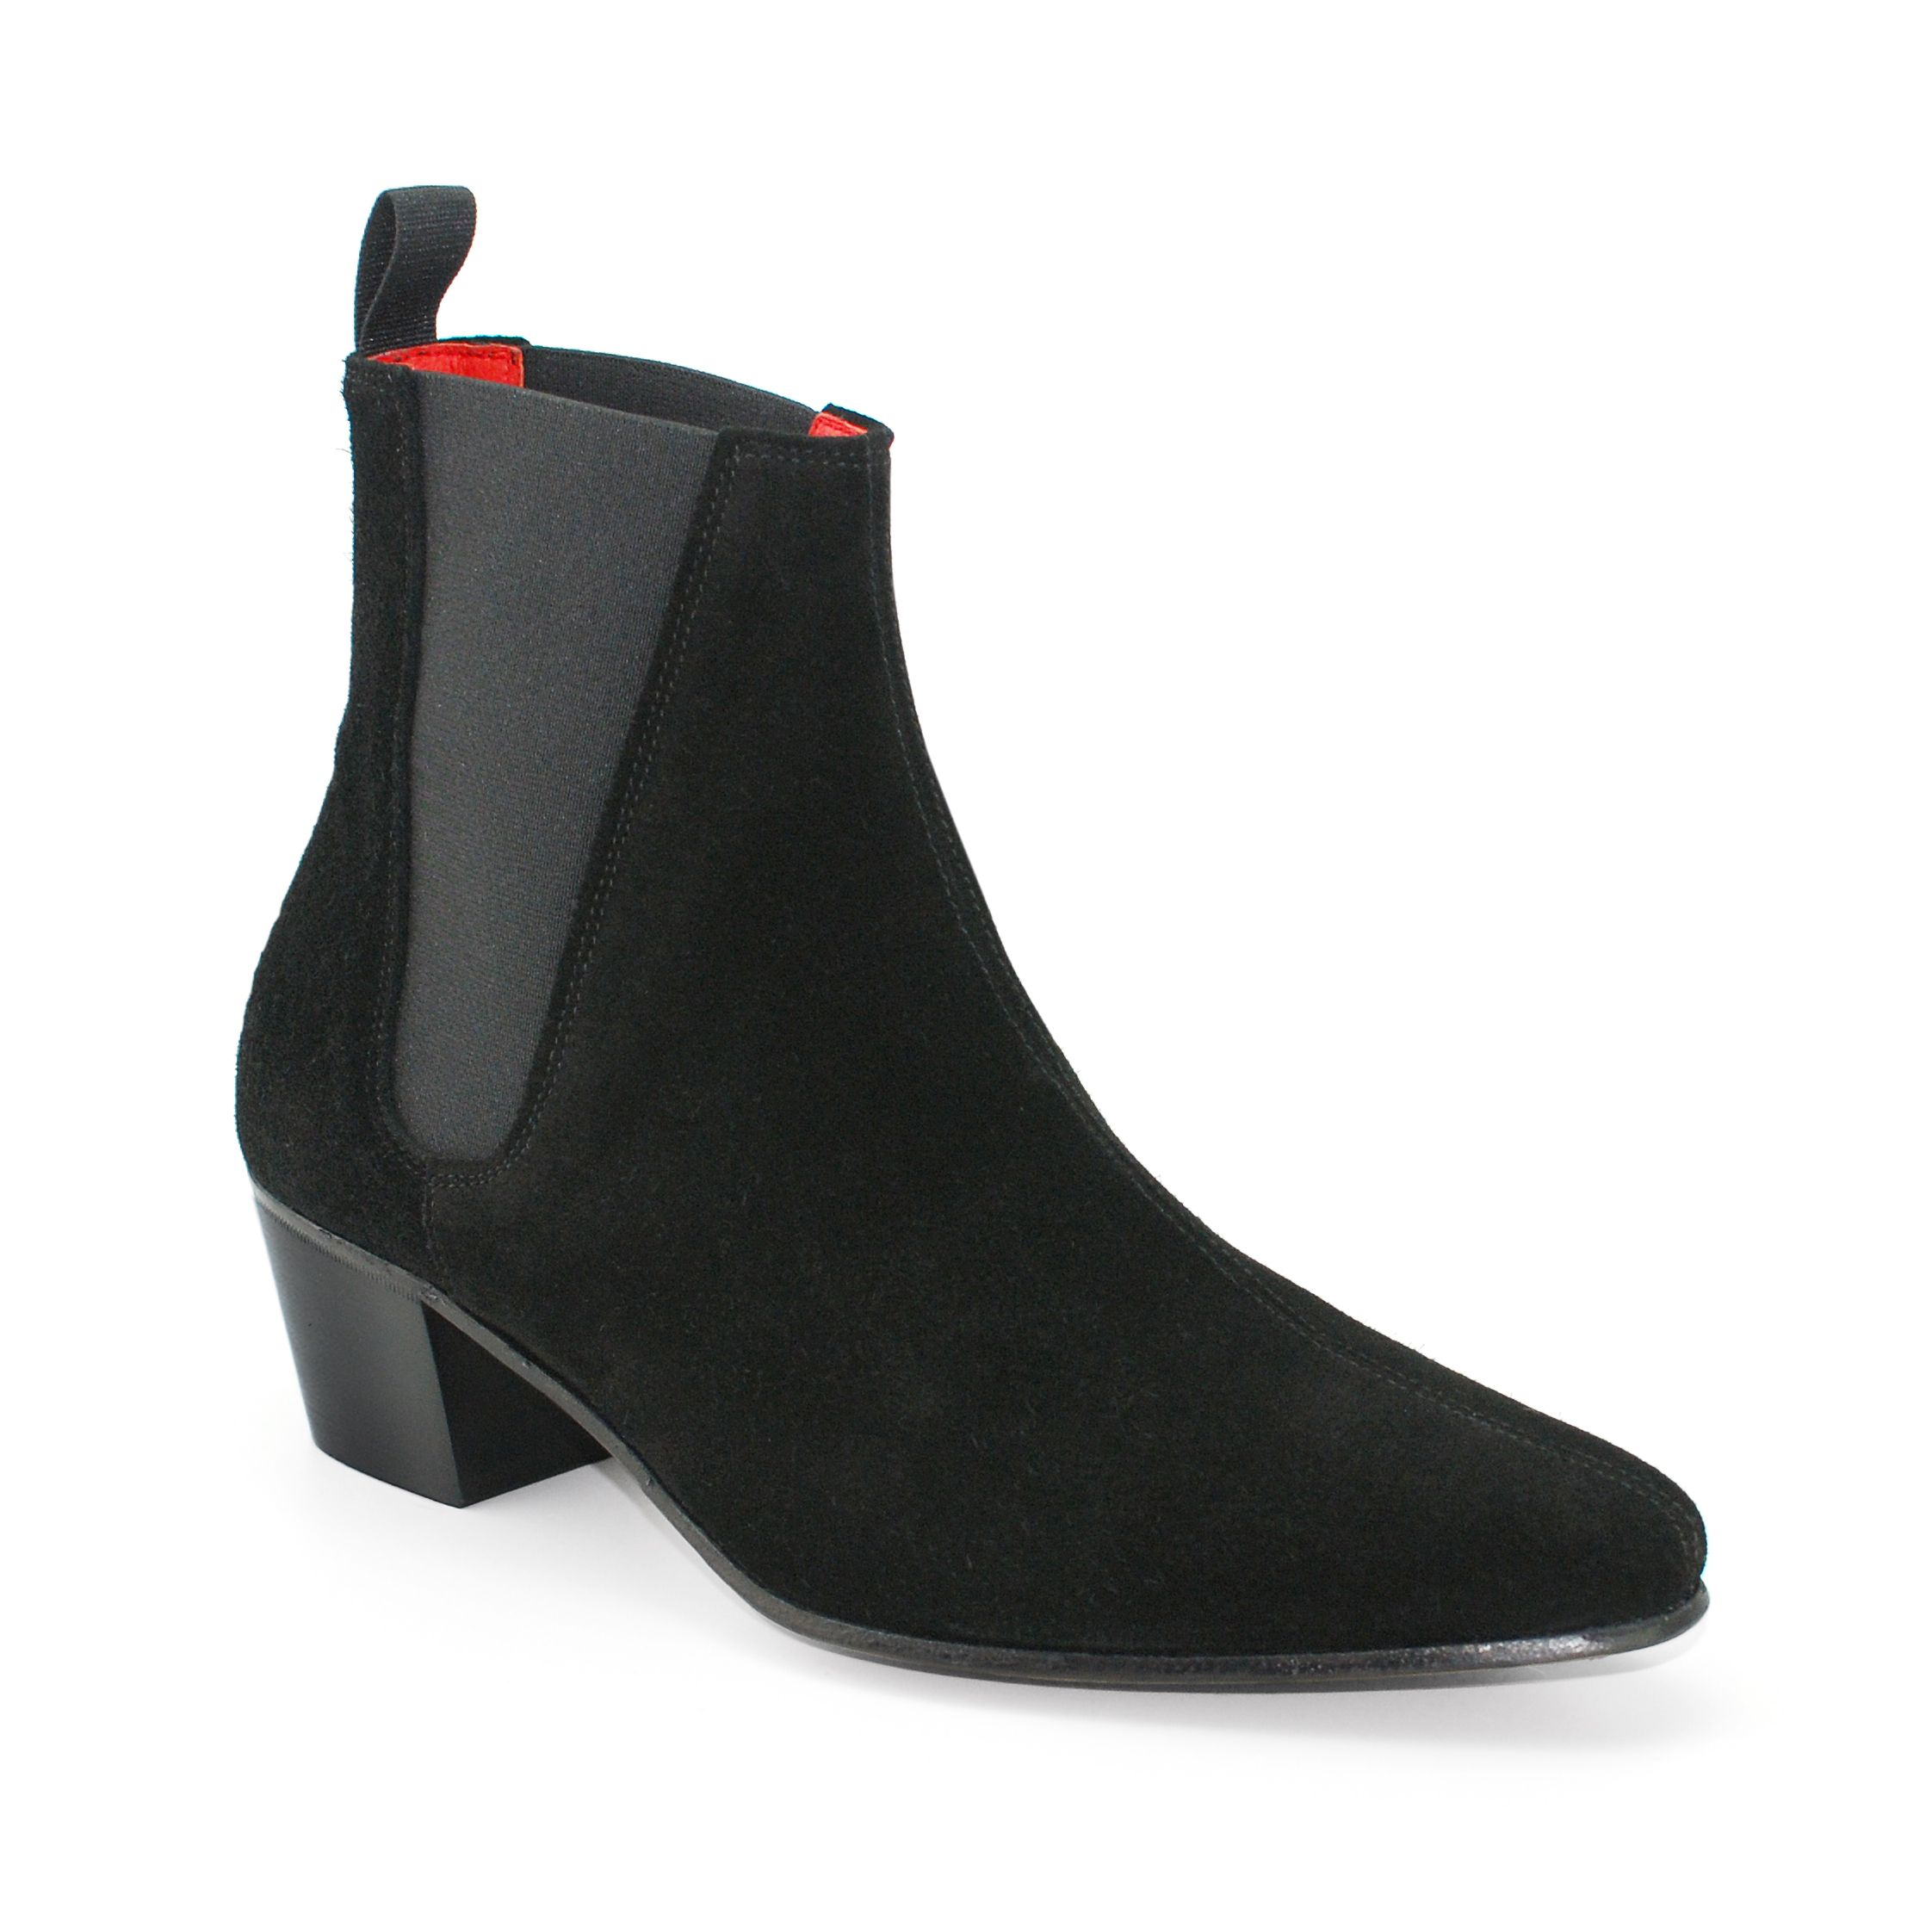 acdae10aabd High Cavern Black Suede | SHOES AND CLOTHES in 2019 | Beatle boots ...